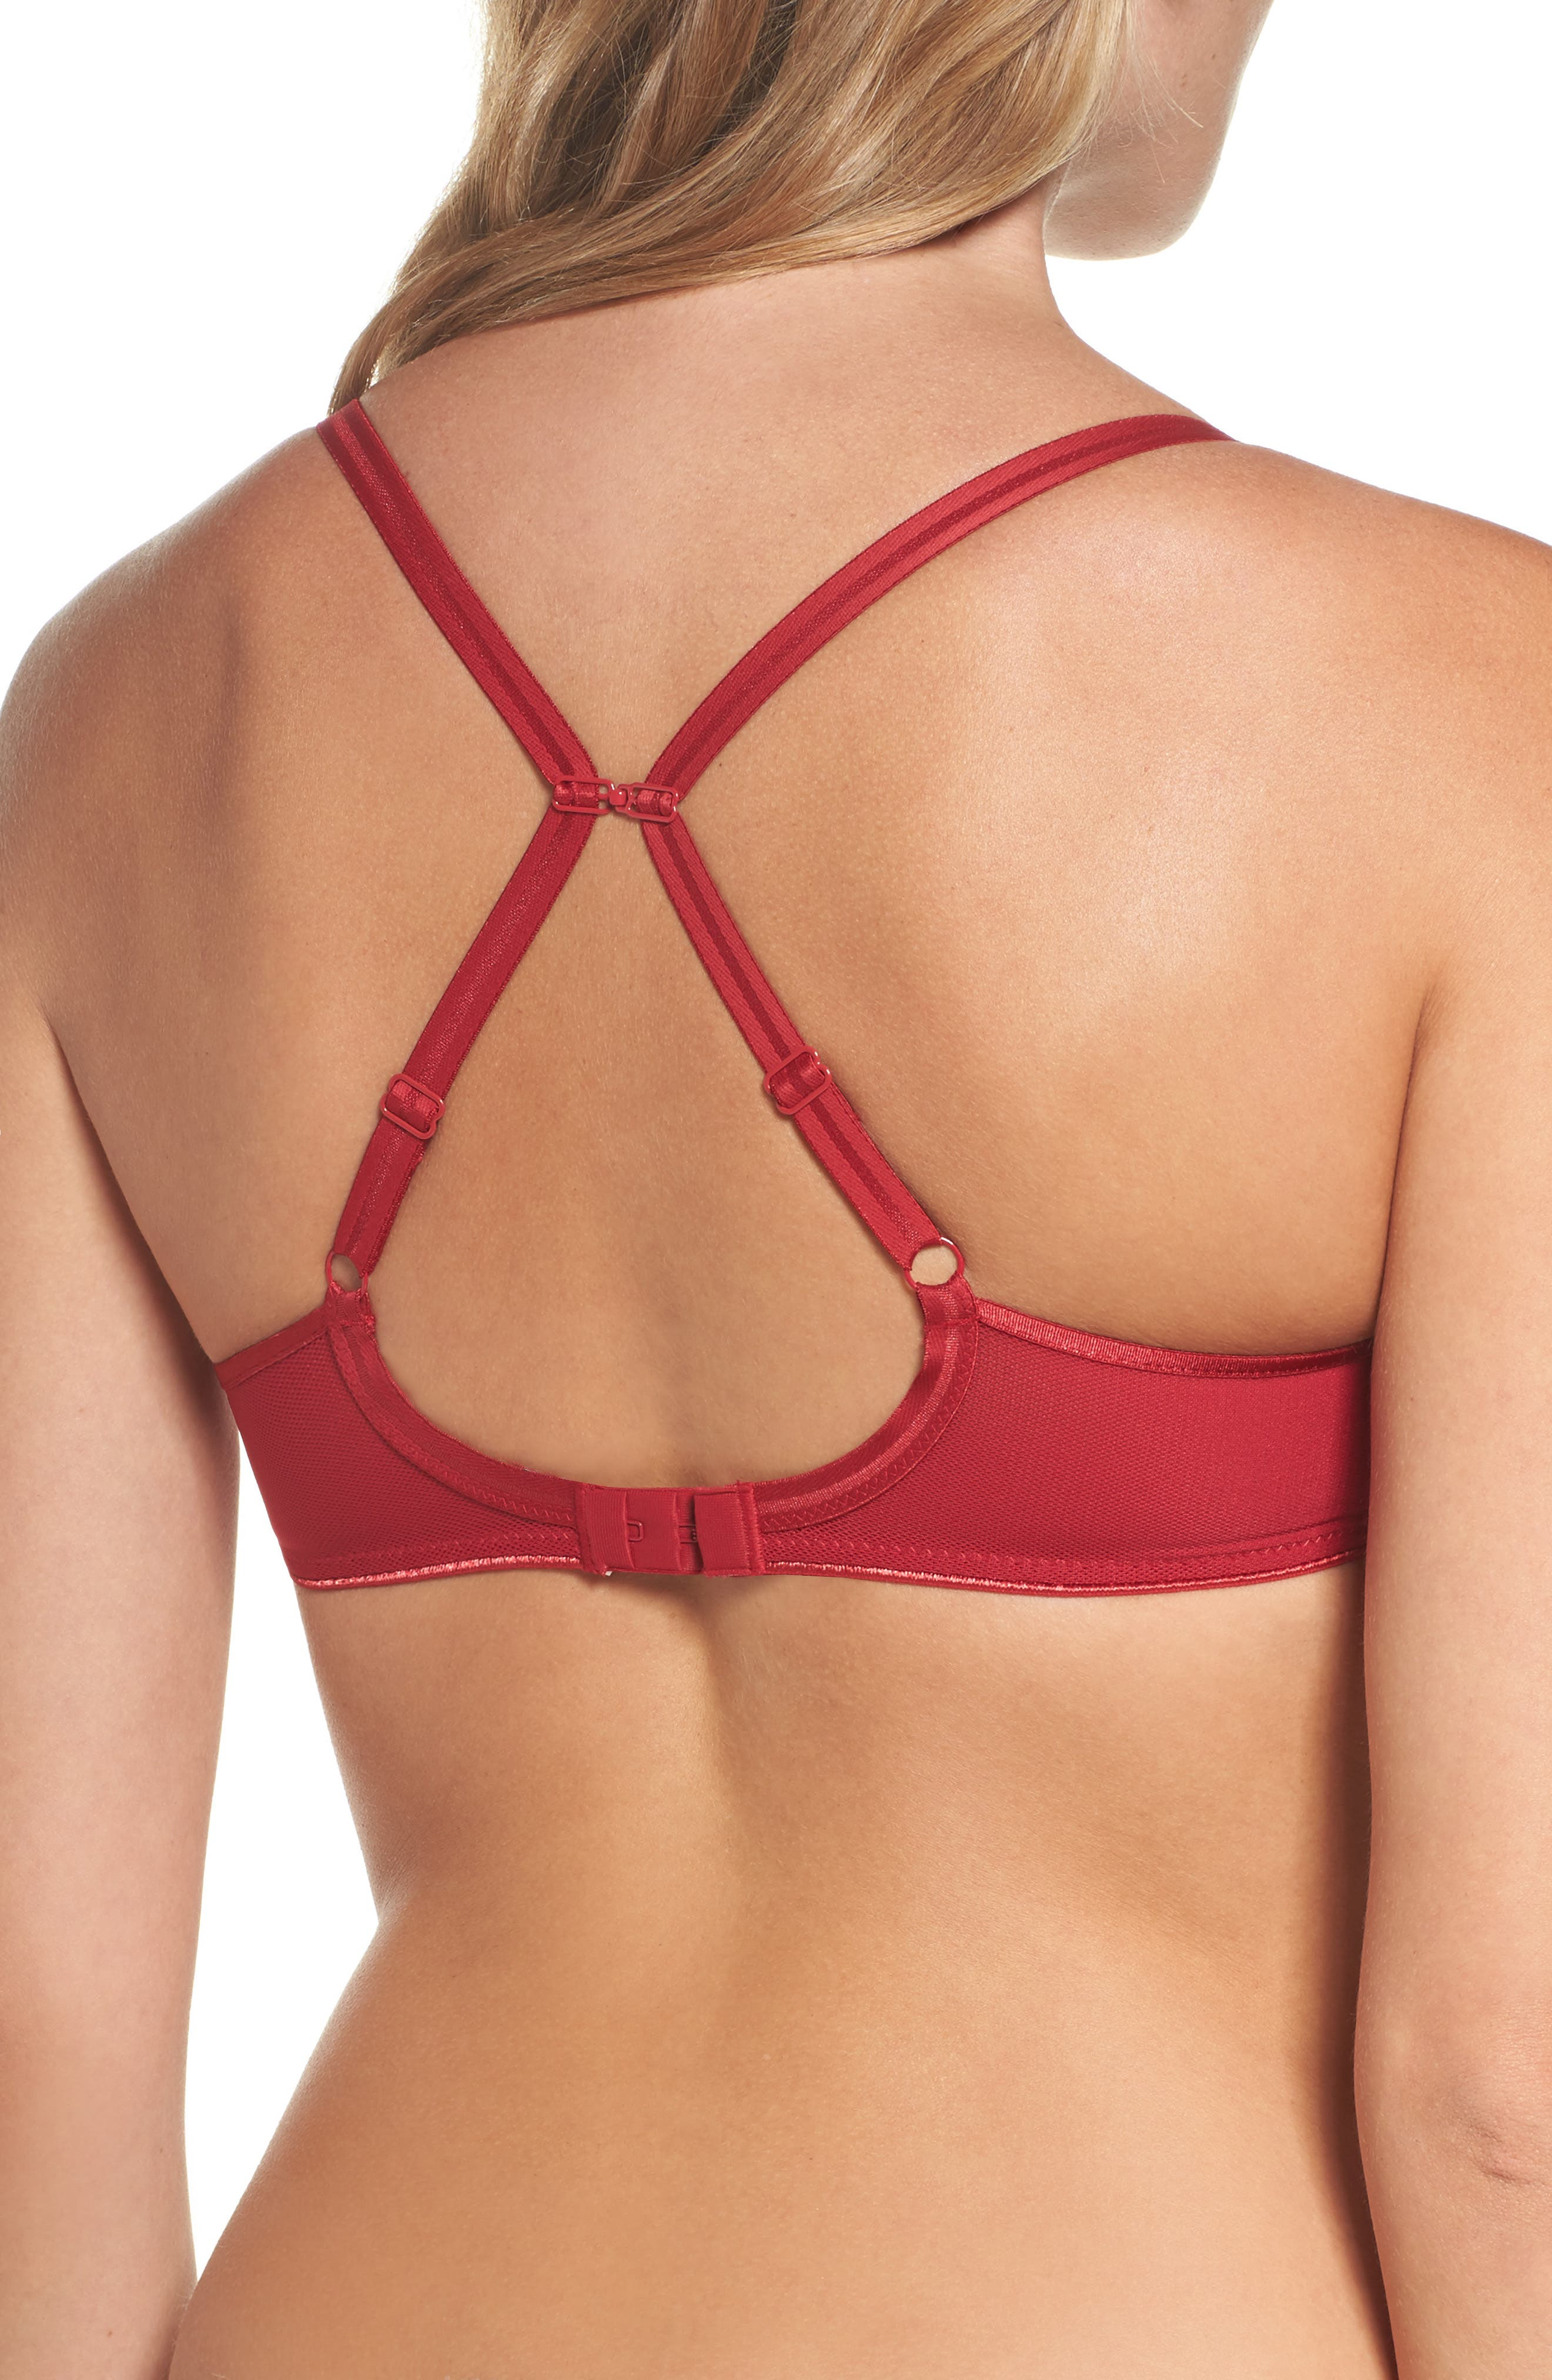 Aeria Underwire Spacer Bra,                             Alternate thumbnail 3, color,                             Candy Apple